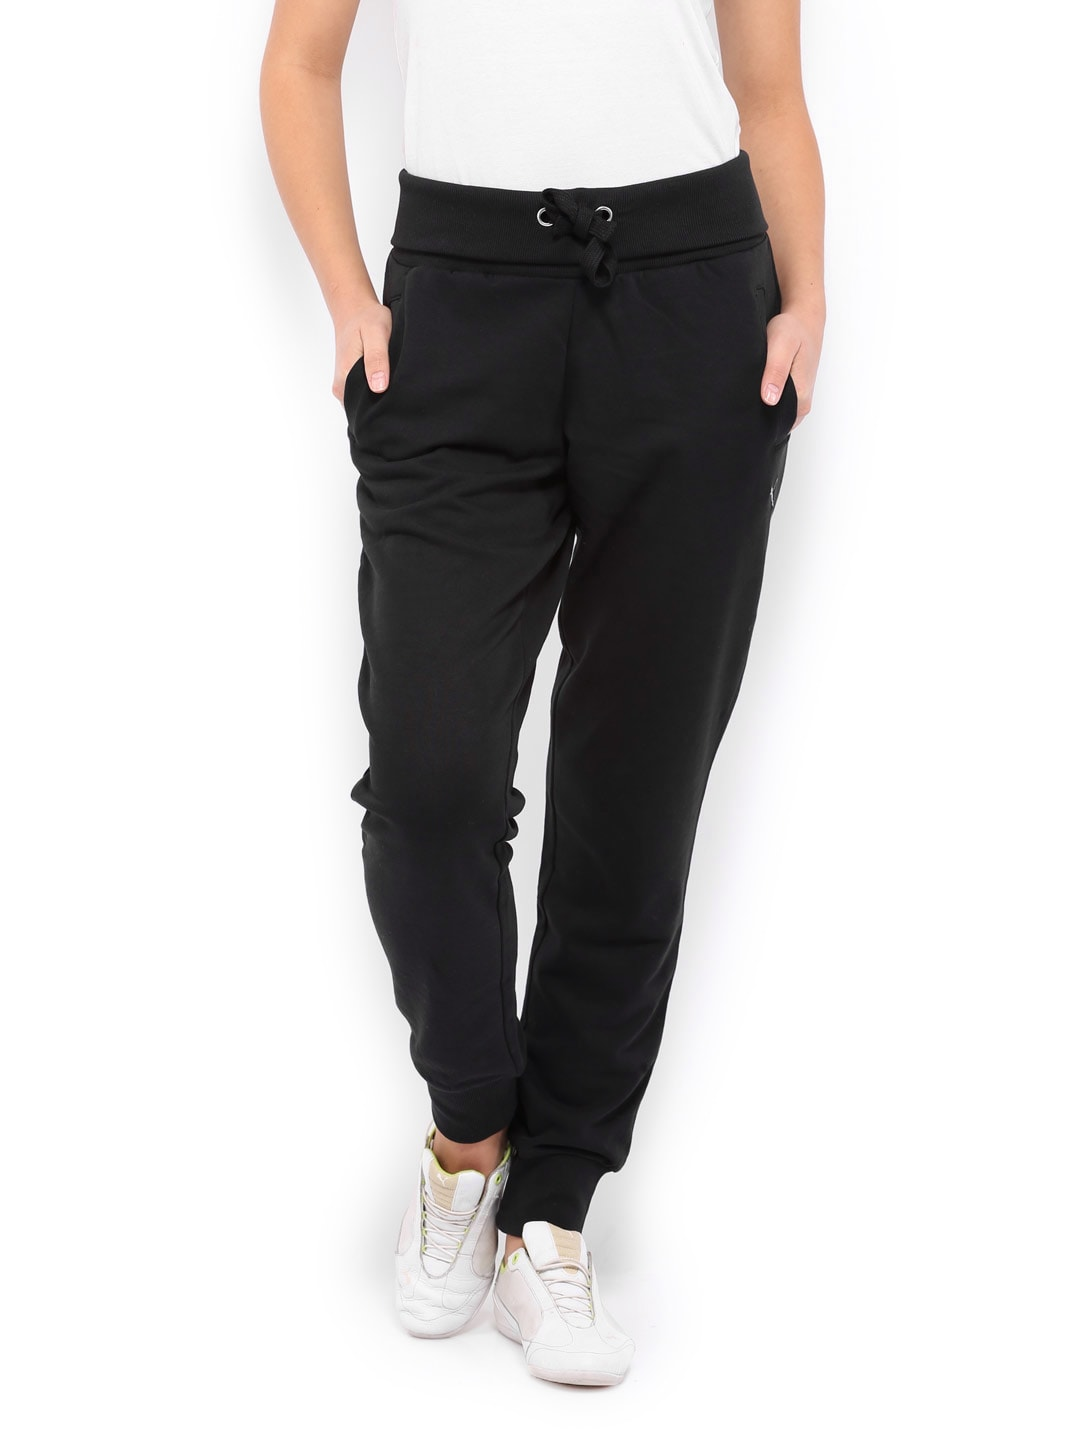 a0242cde7568 Buy puma ladies tracksuit bottoms - 64% OFF! Share discount